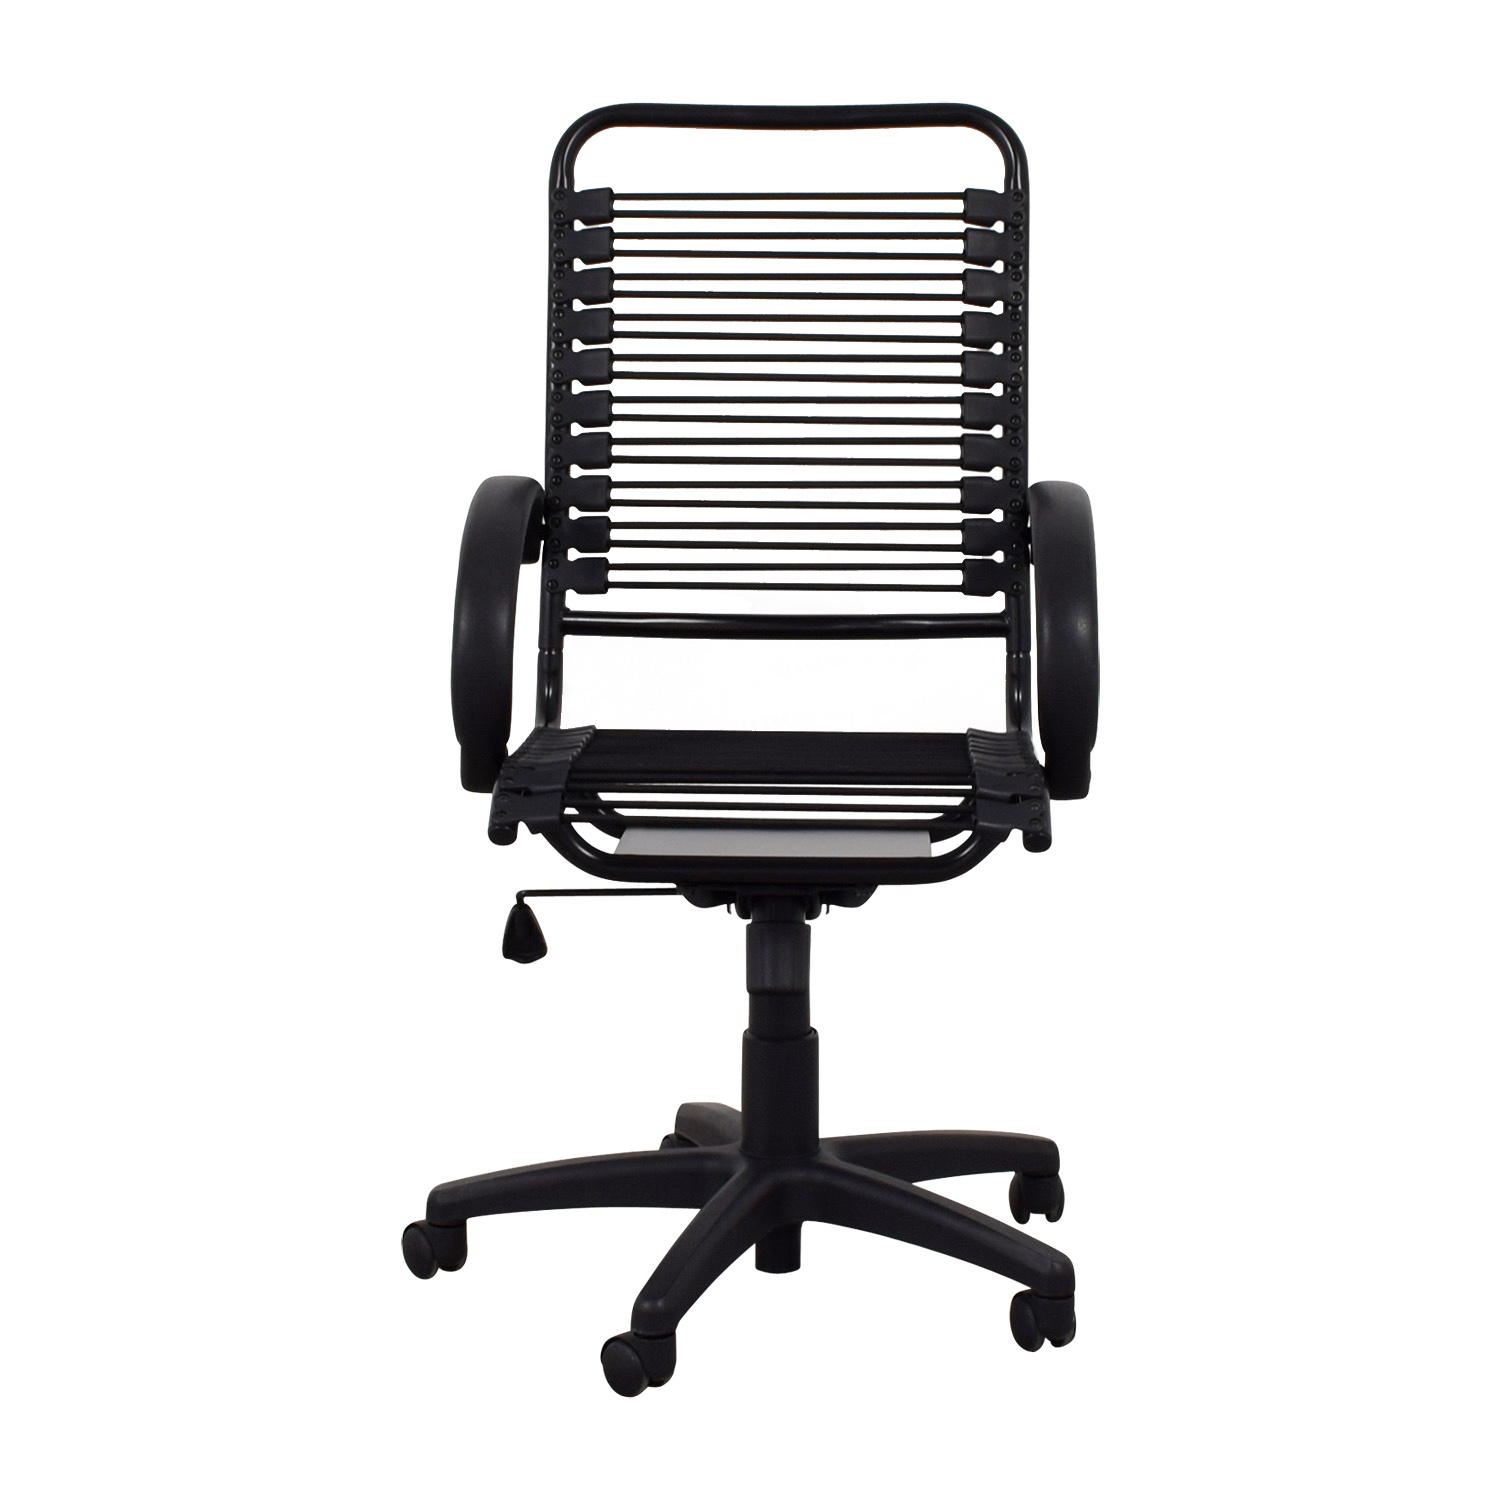 CB2 Black Studio Office Chair CB2